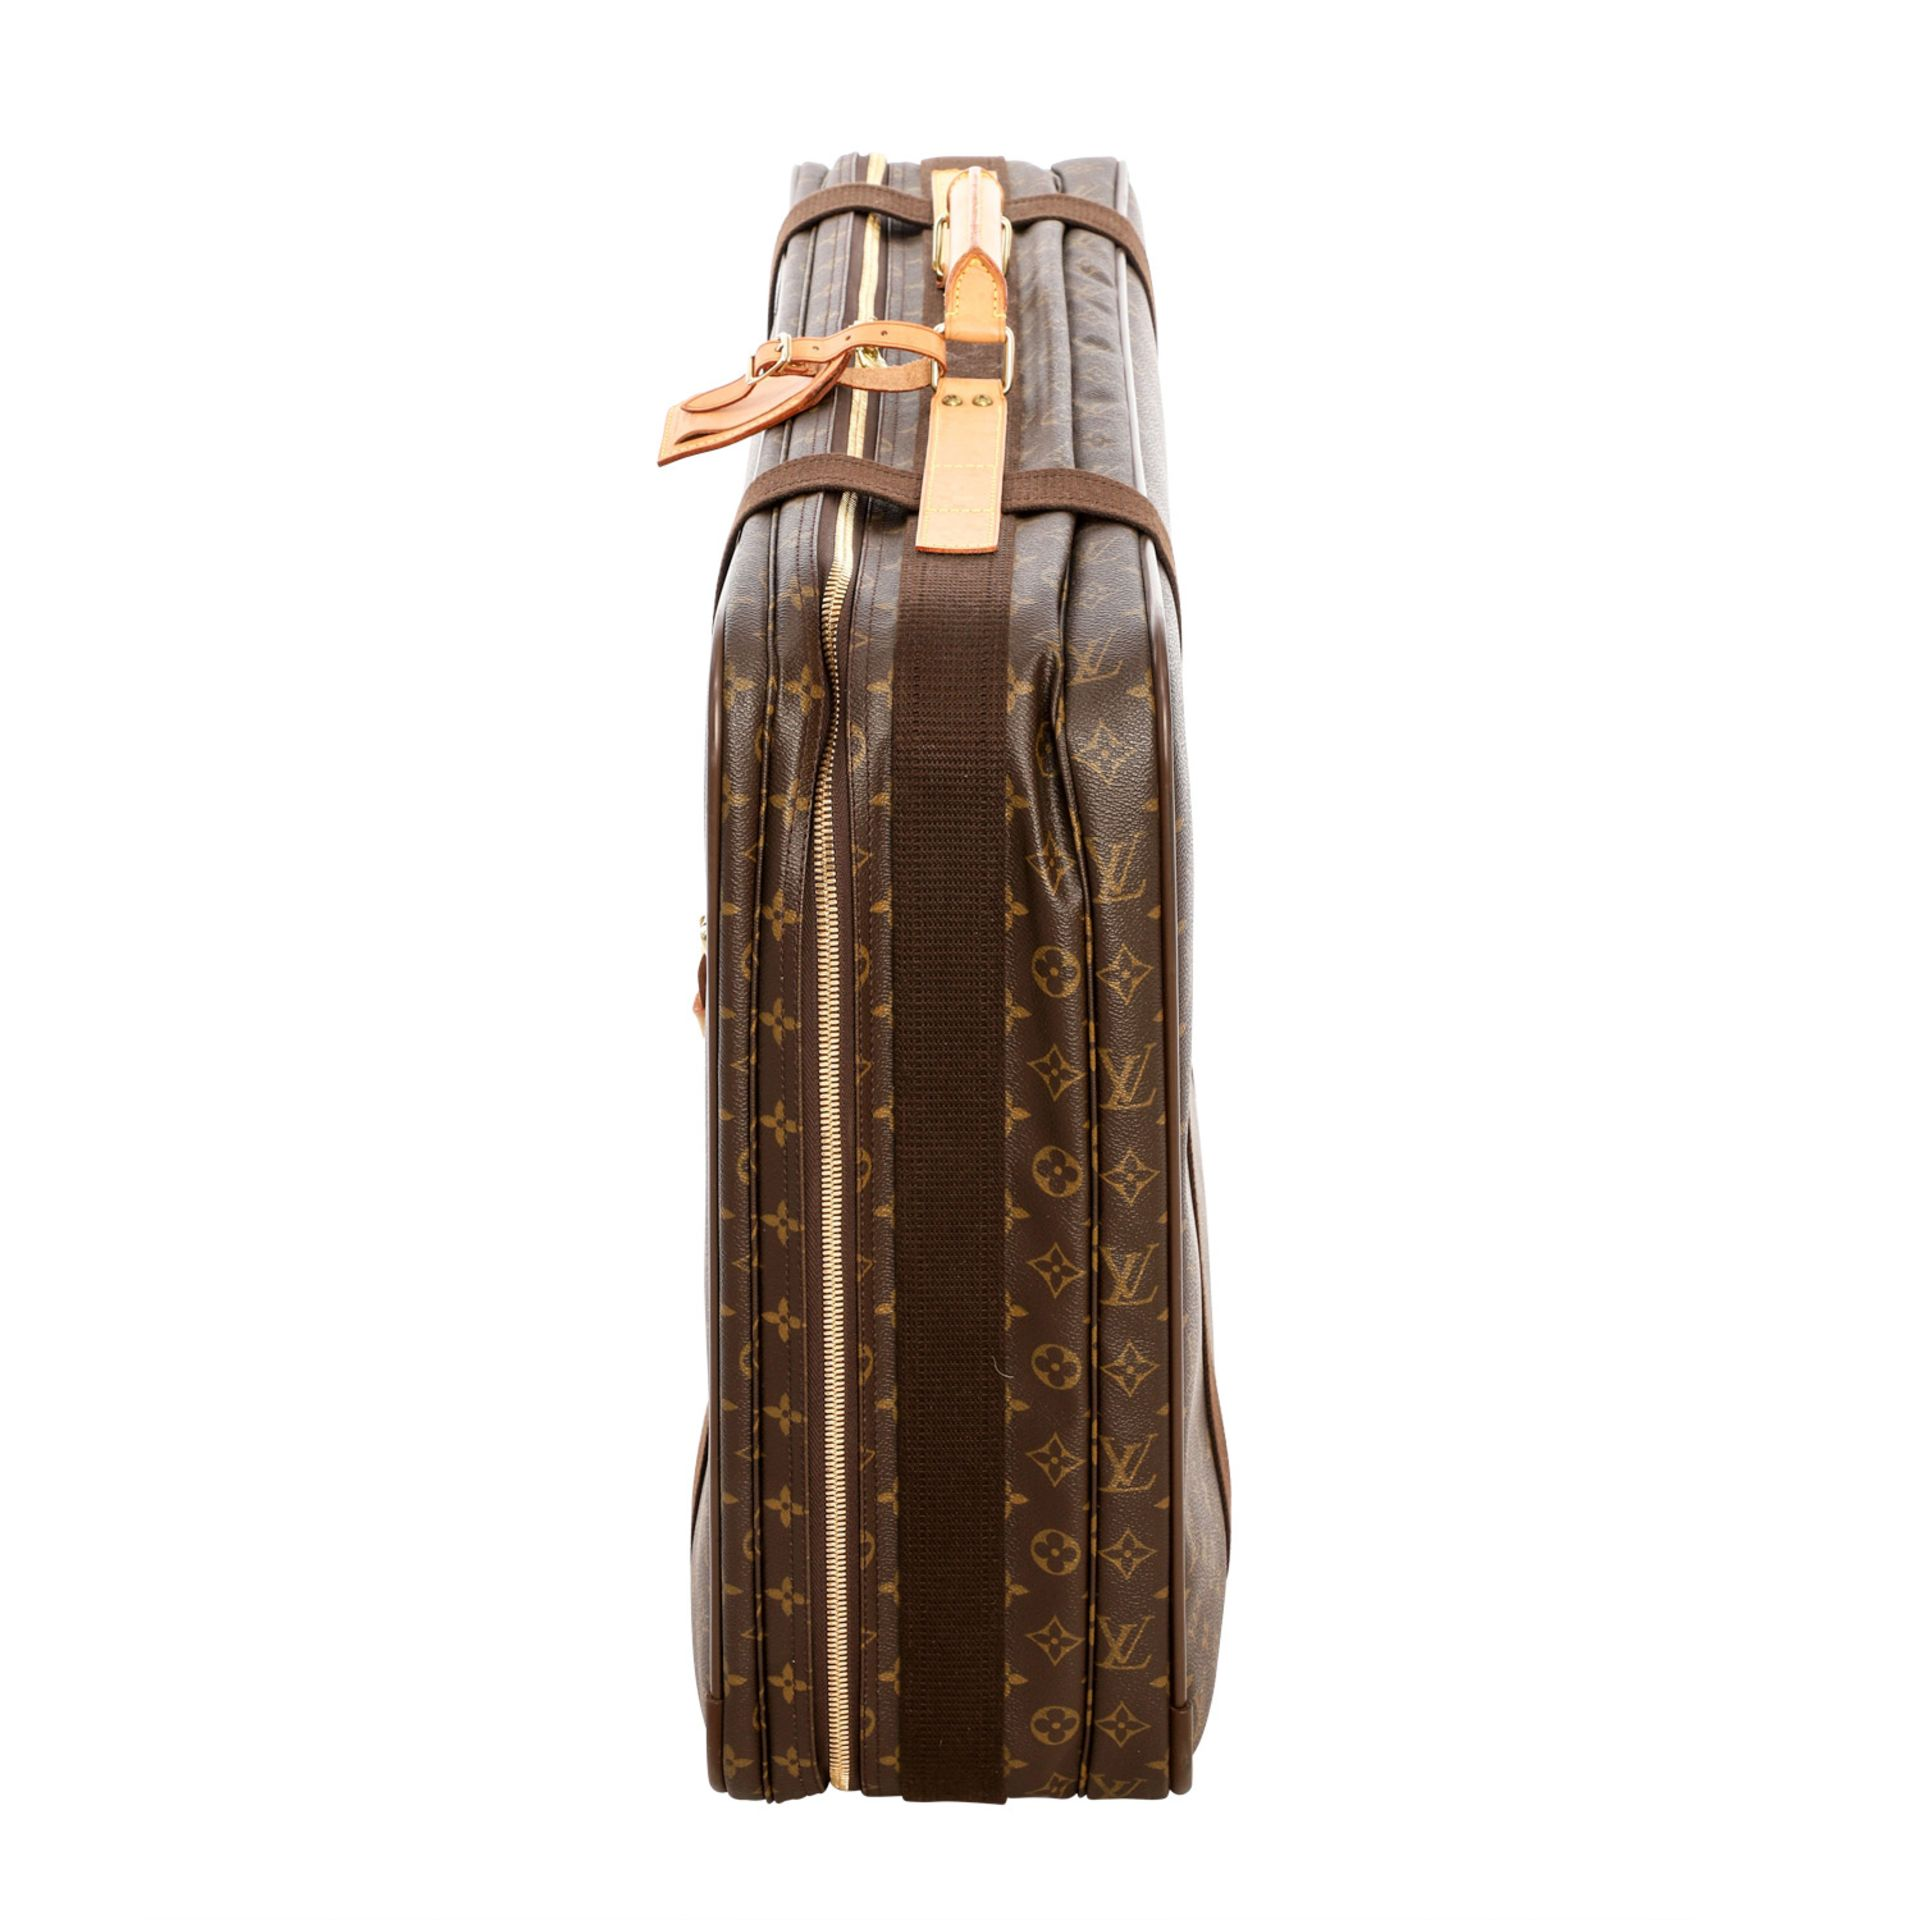 "LOUIS VUITTON Reisetasche ""SIRIUS 70"", Koll. 2000.Akt. NP.: 1.790,-€. Monogram Canva - Image 3 of 6"